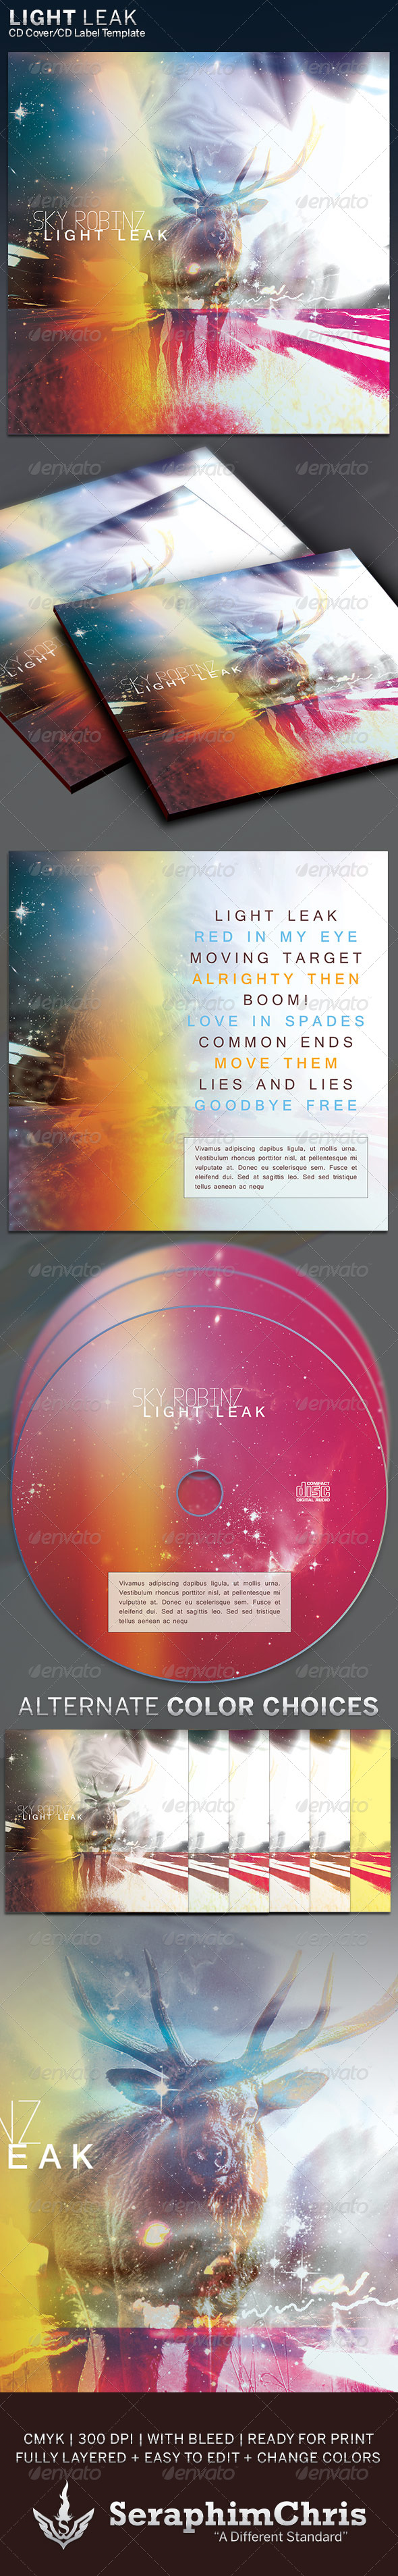 GraphicRiver Light Leak CD Cover Artwork Template 6312605